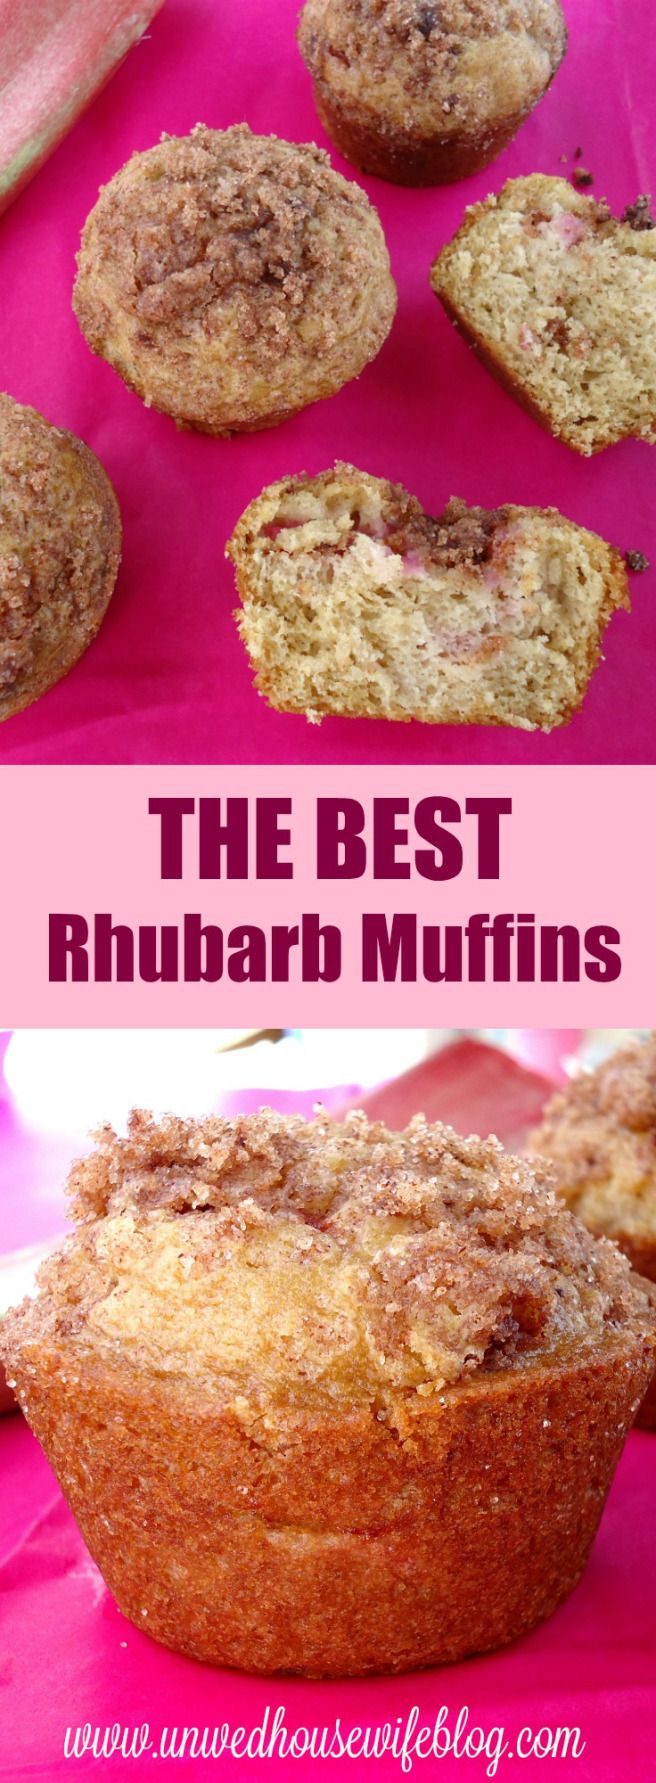 THE BEST Rhubarb Muffins | Unwed Housewife | Dense, moist, bakery style rhubarb muffin recipe. THE BEST rhubarb muffins out there.